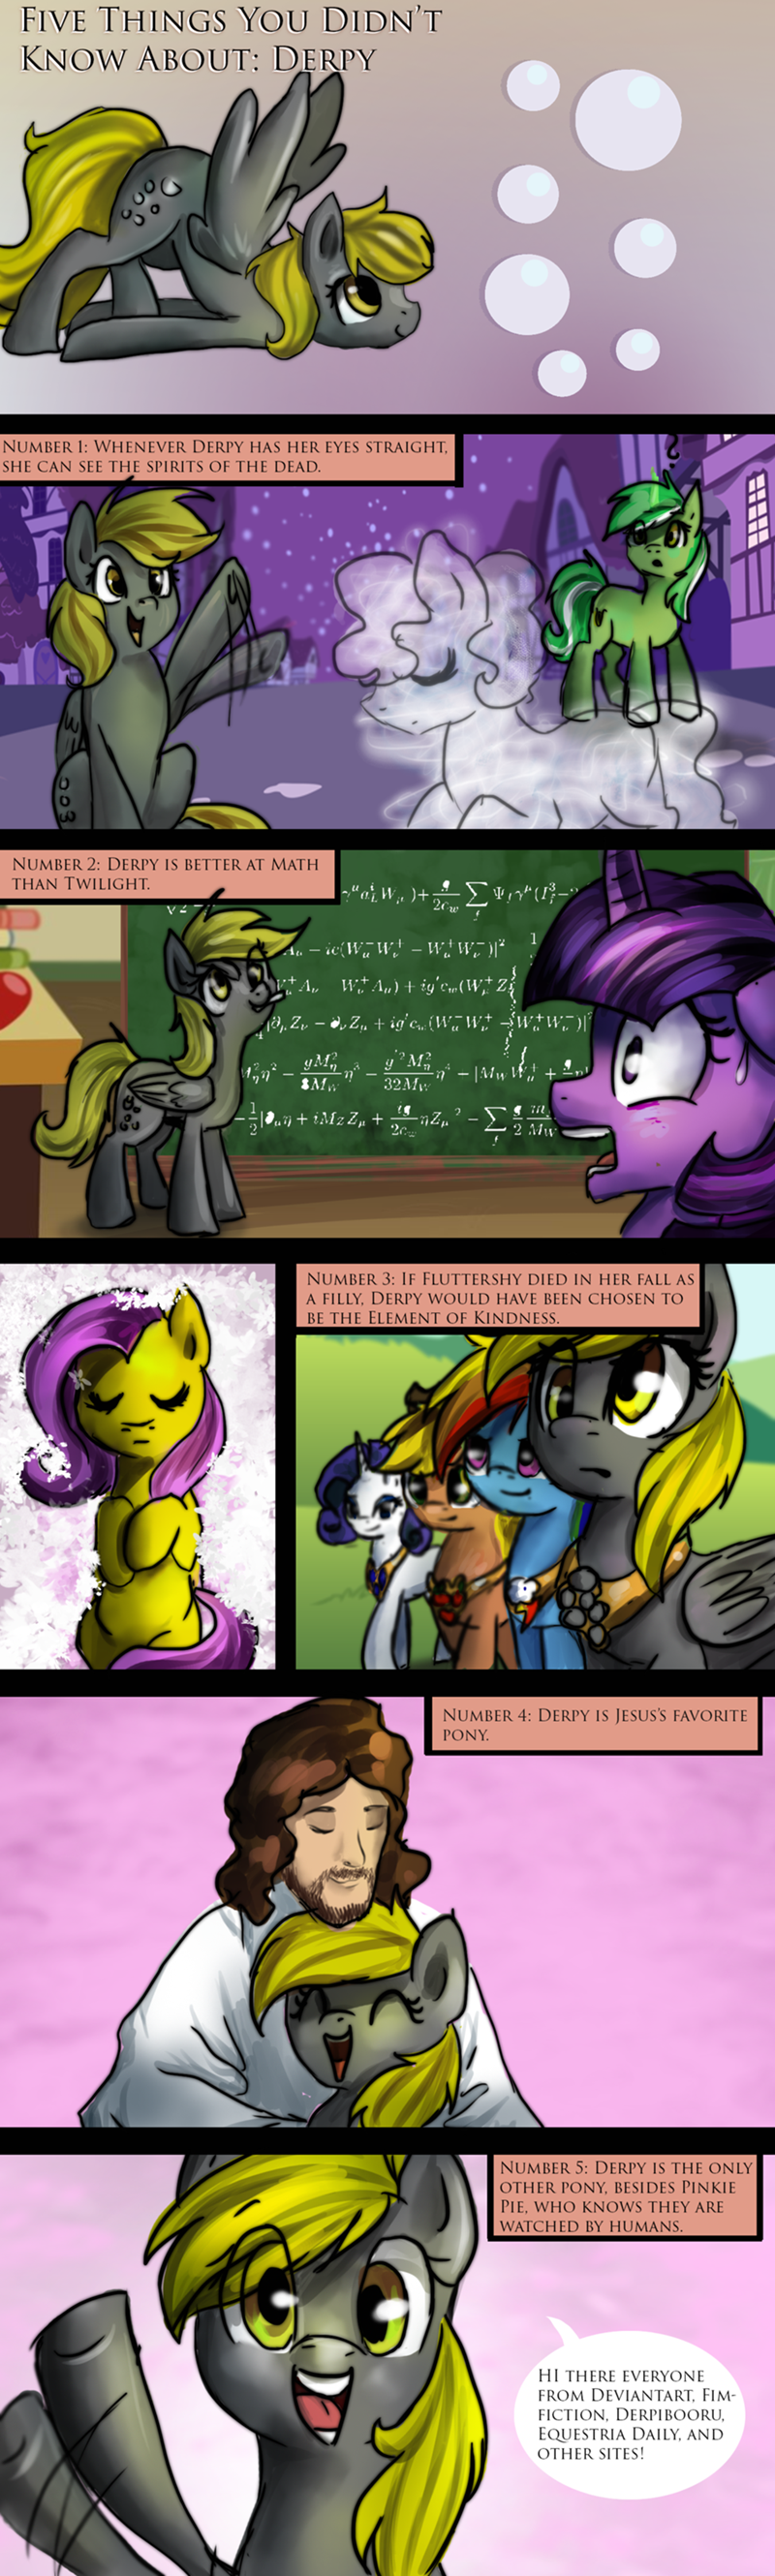 jesus fourth wall derpy hooves twilight sparkle rated r ponystar comic fluttershy - 9125981952